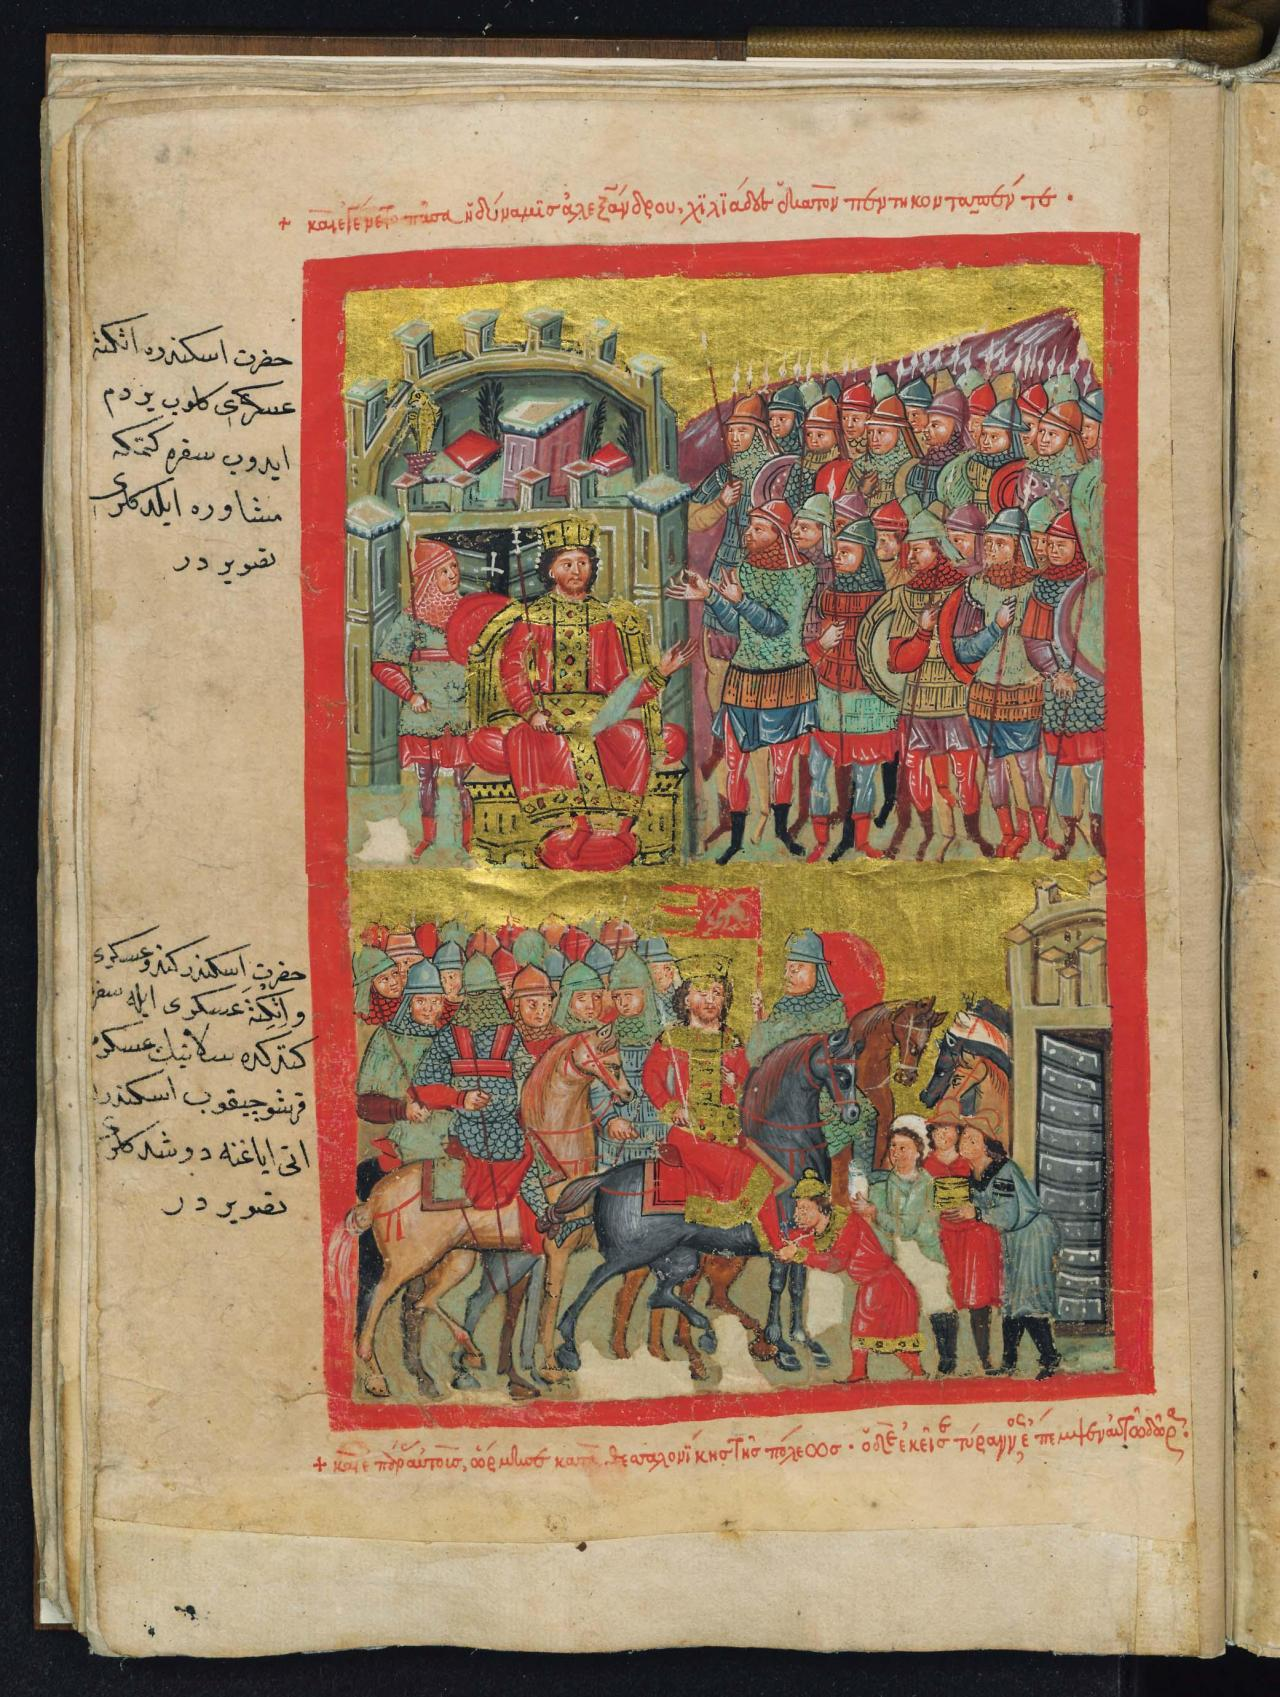 Illustrated page of the Venice manuscript, located in the Greek Institute of Venice, depicting Alexander the Great in imperial byzantine clothing. Produced most probably in the empire of Trebizond, Alexander was the ultimate imperial prototype, especially since its rulers claimed to be the rulers of the entire East.